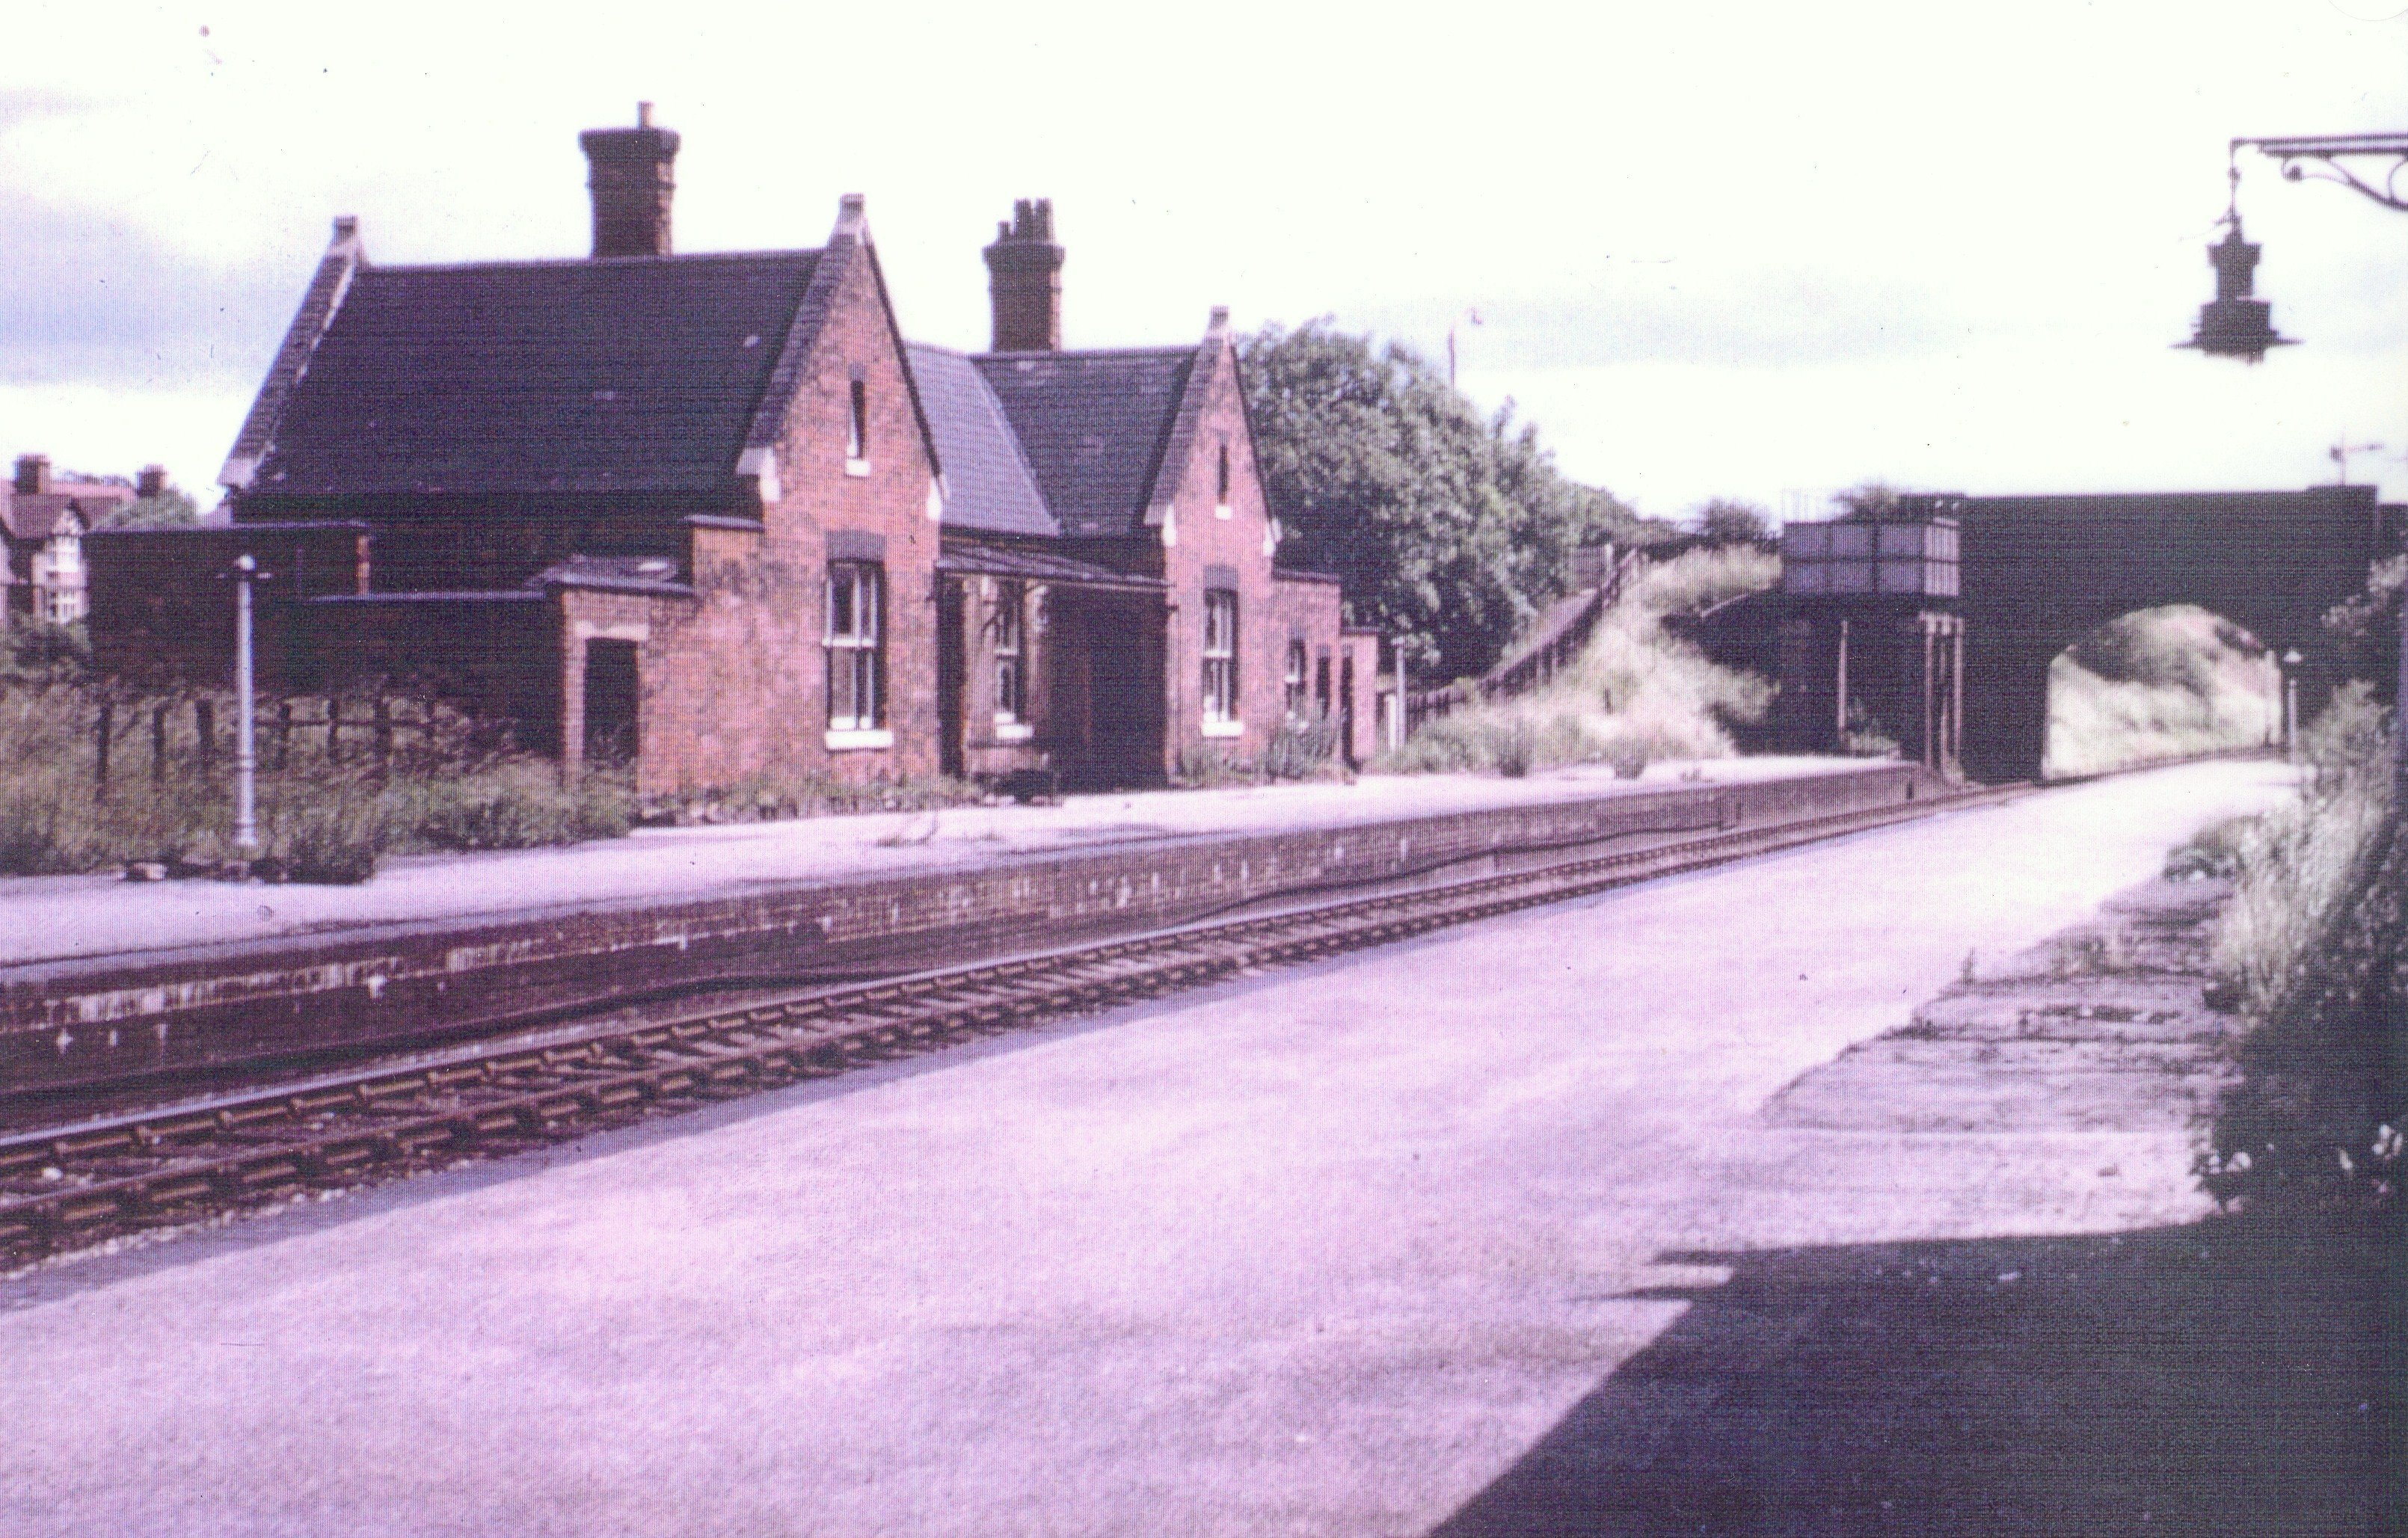 This view probably after the closure of the Station in January 1965